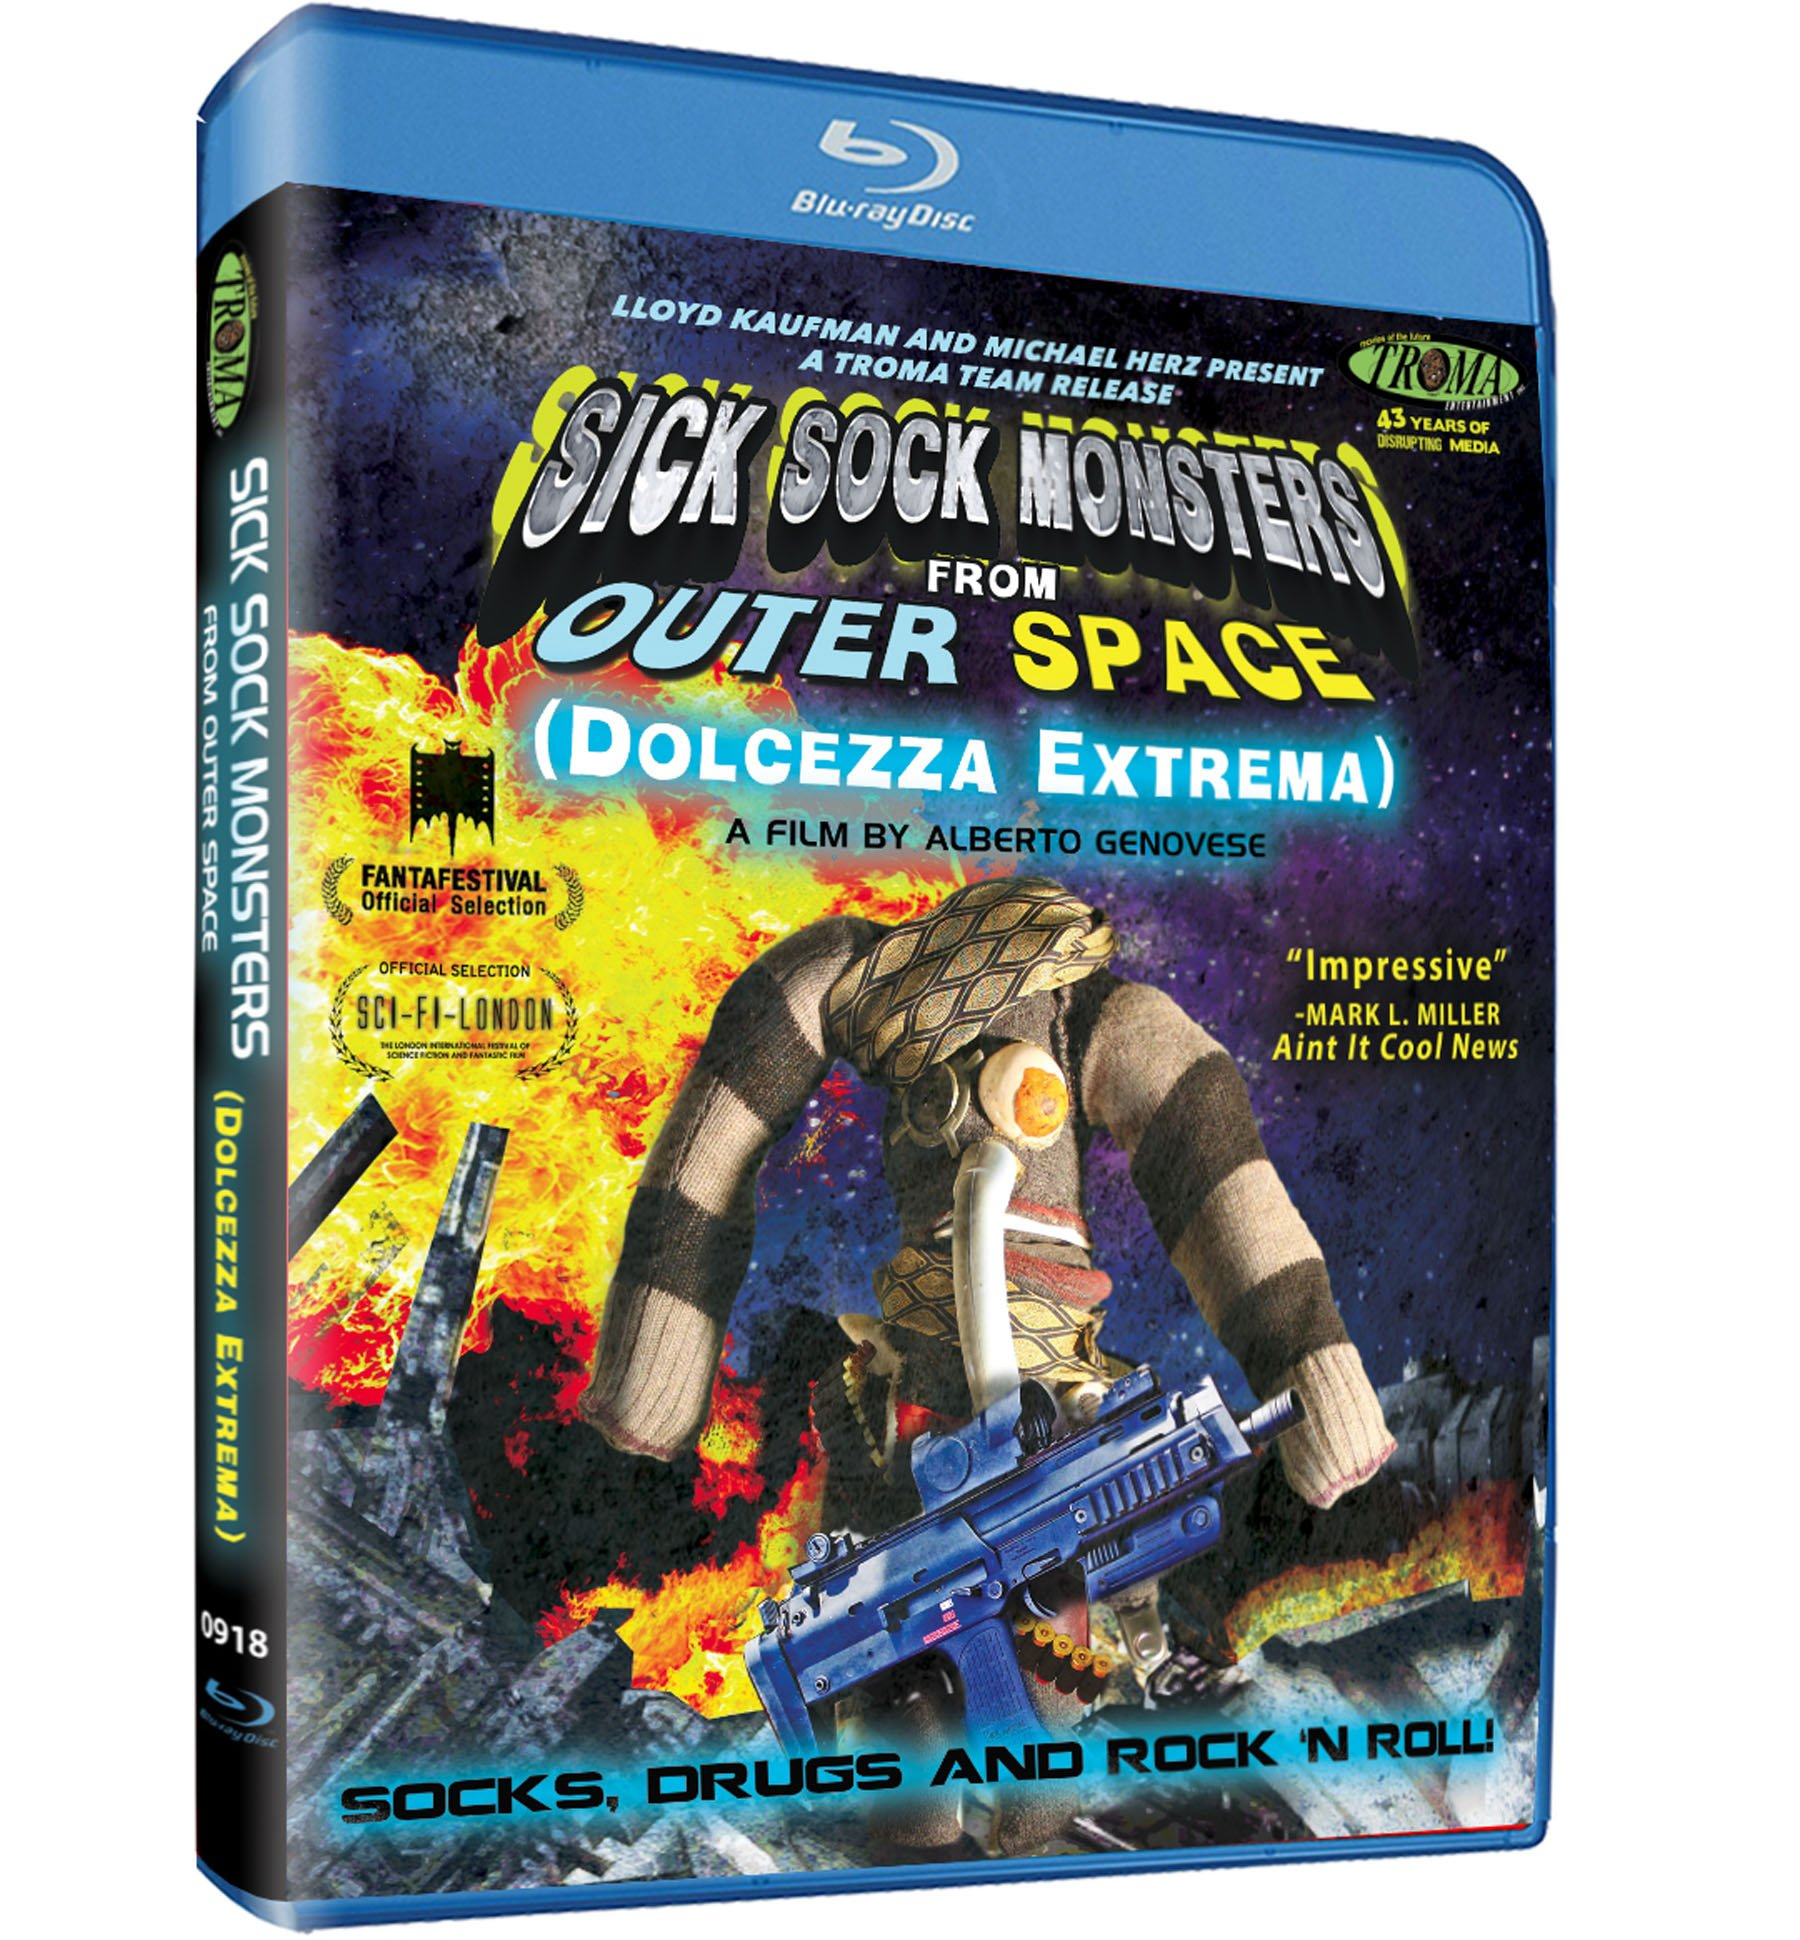 Blu-ray : Sick Sock Monsters From Outer Space (Blu-ray)